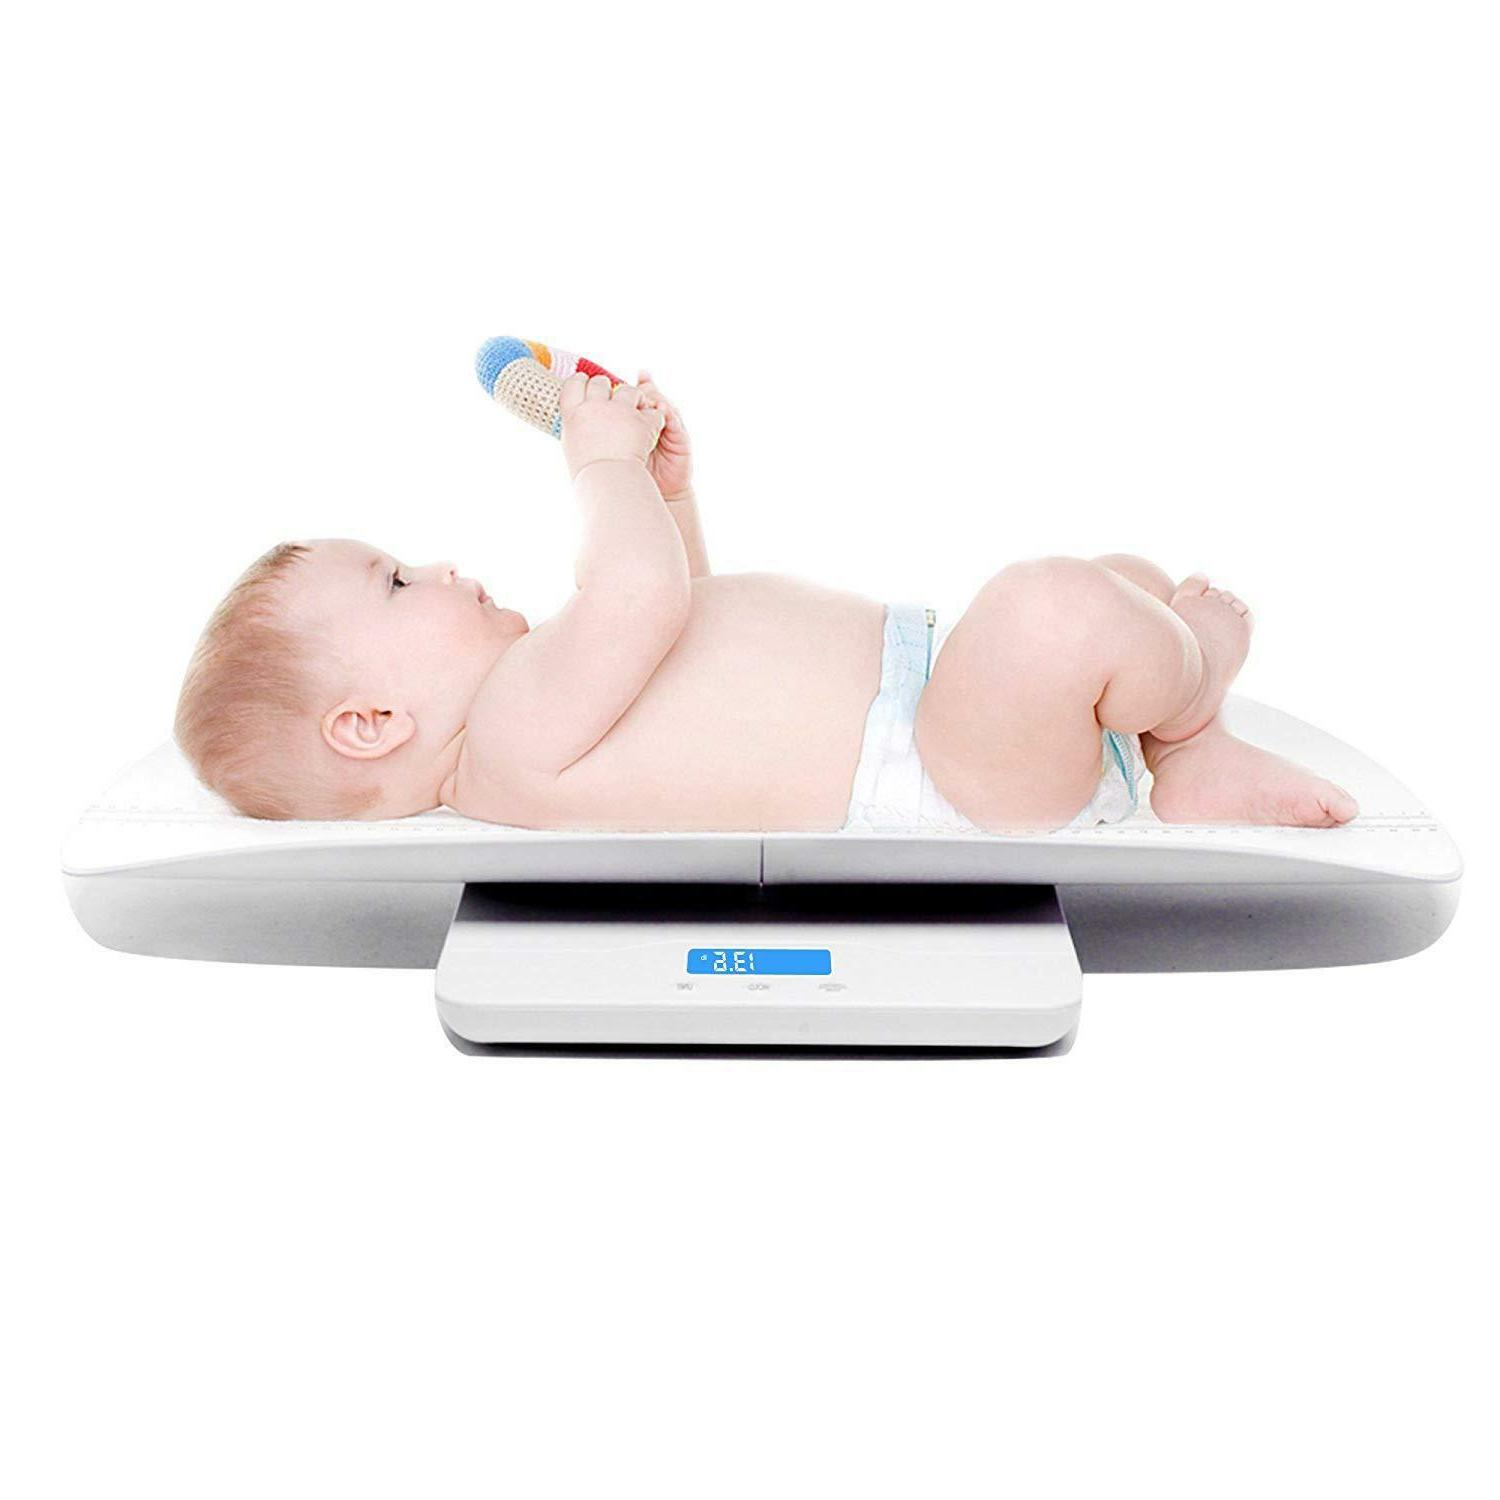 isnow med multi function digital baby scale